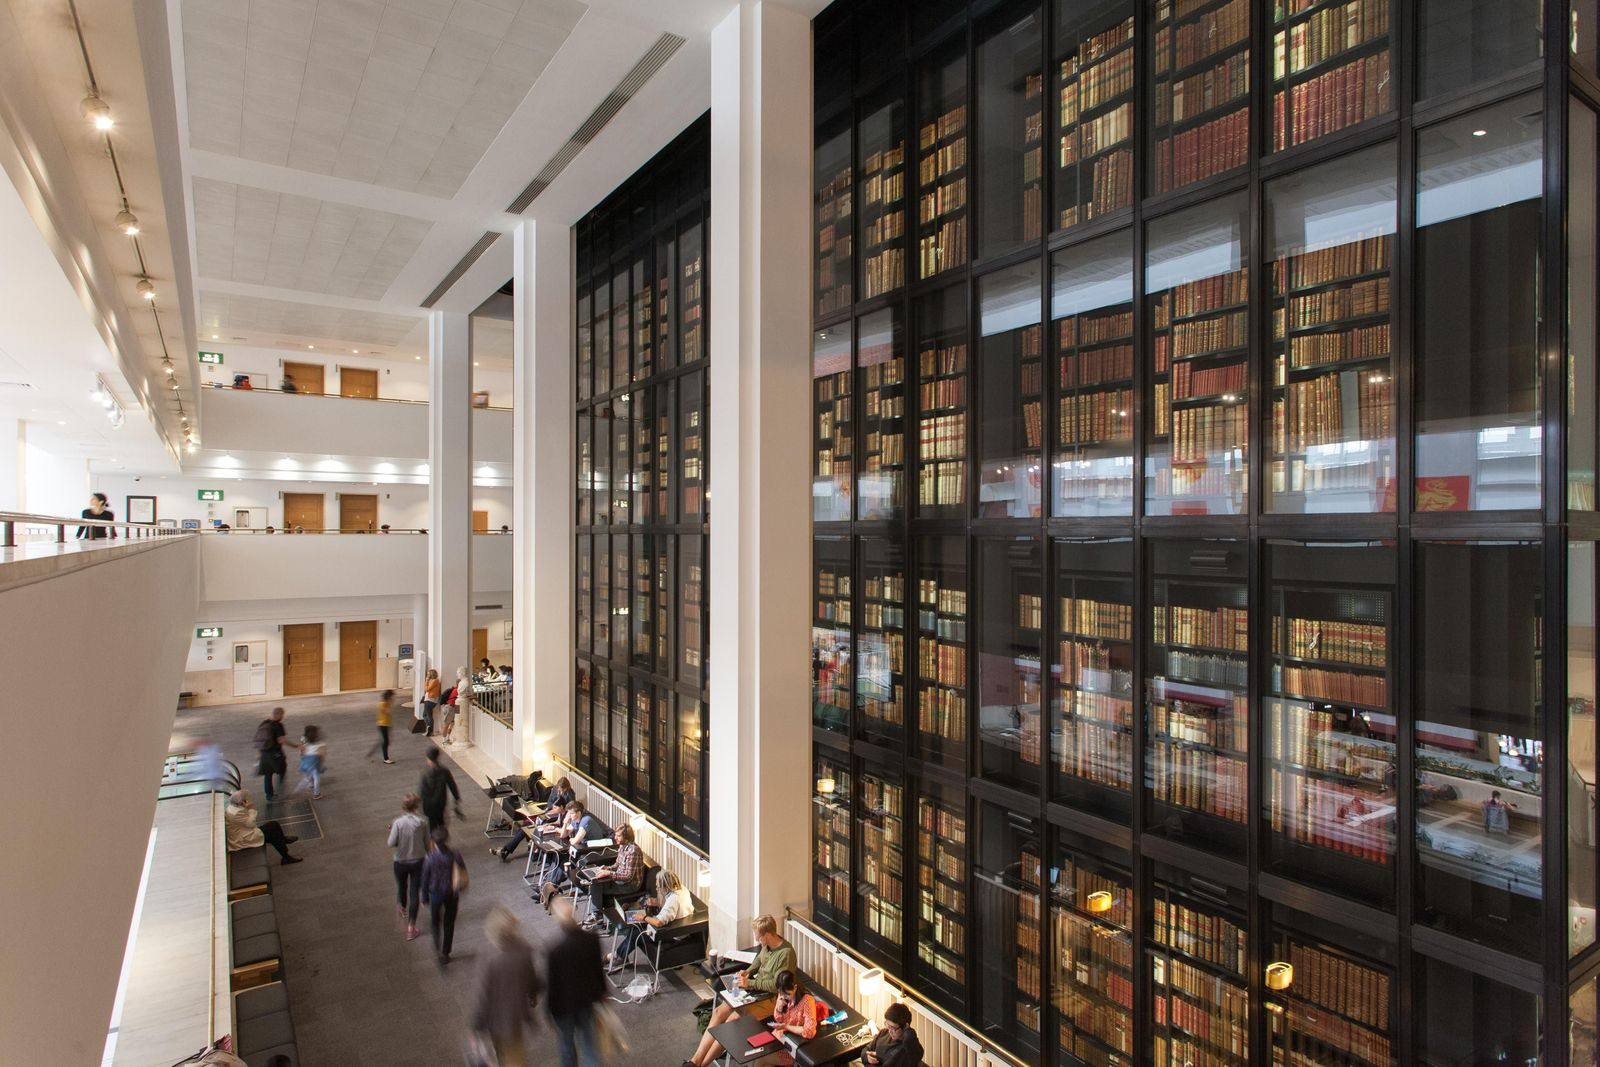 The British Library's Dirtiest Books Have Been Digitized